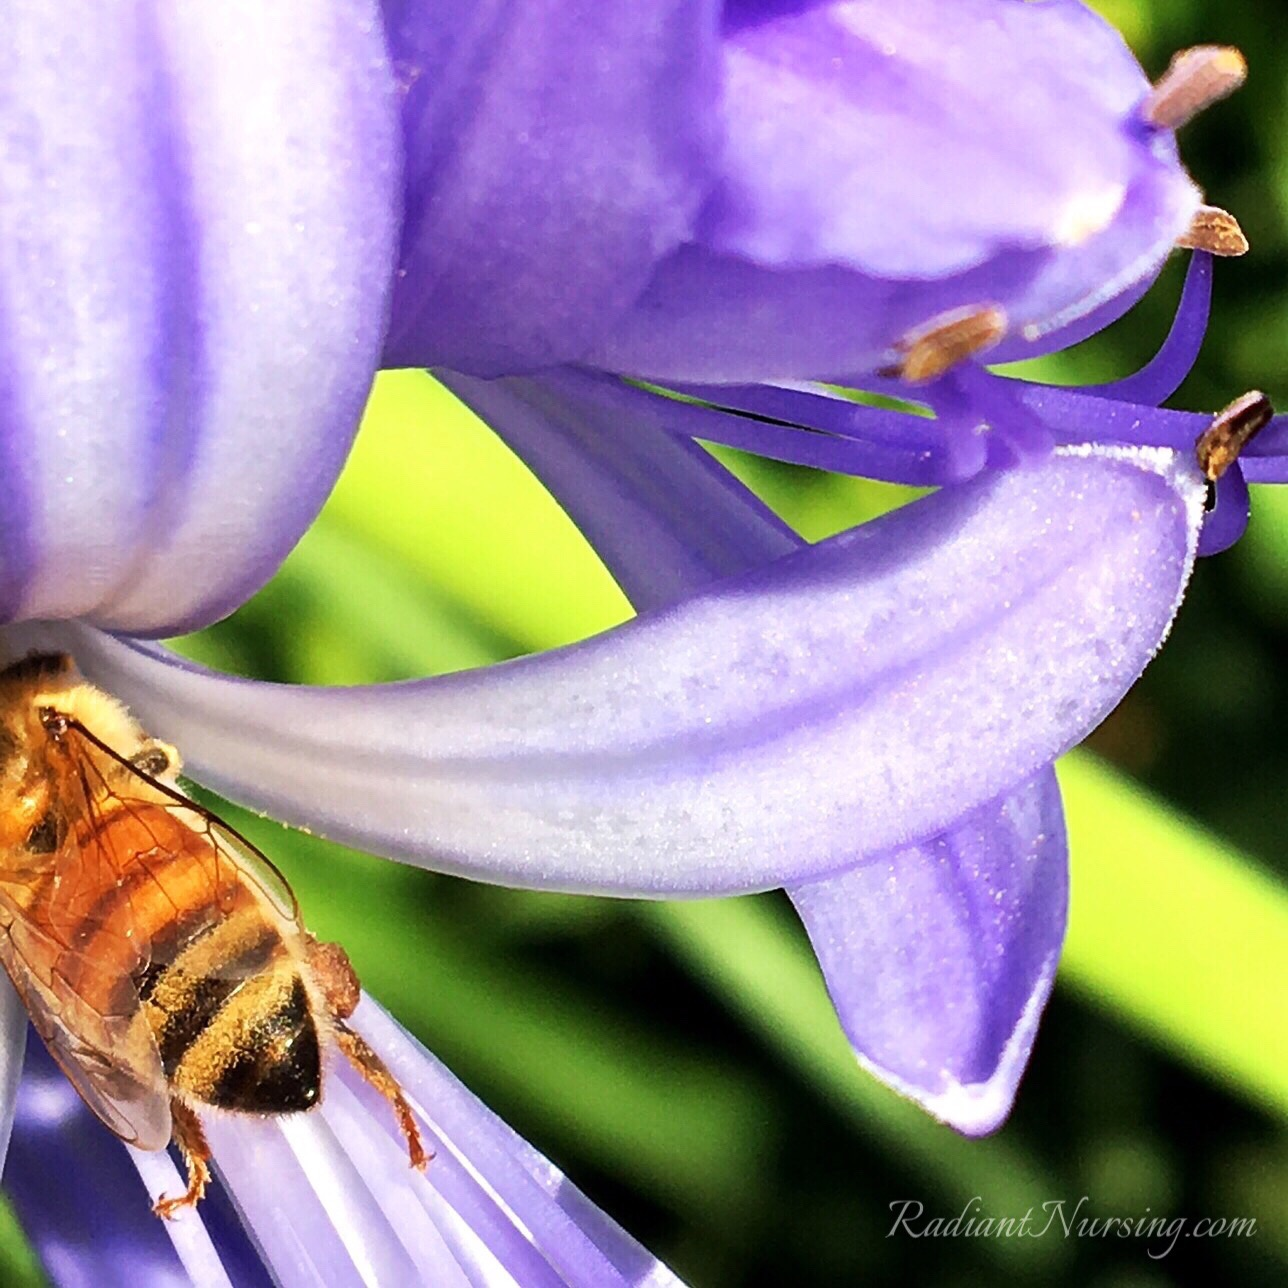 A honey bee hard at work in an Agapanthus flower, in search of tasty nectar.